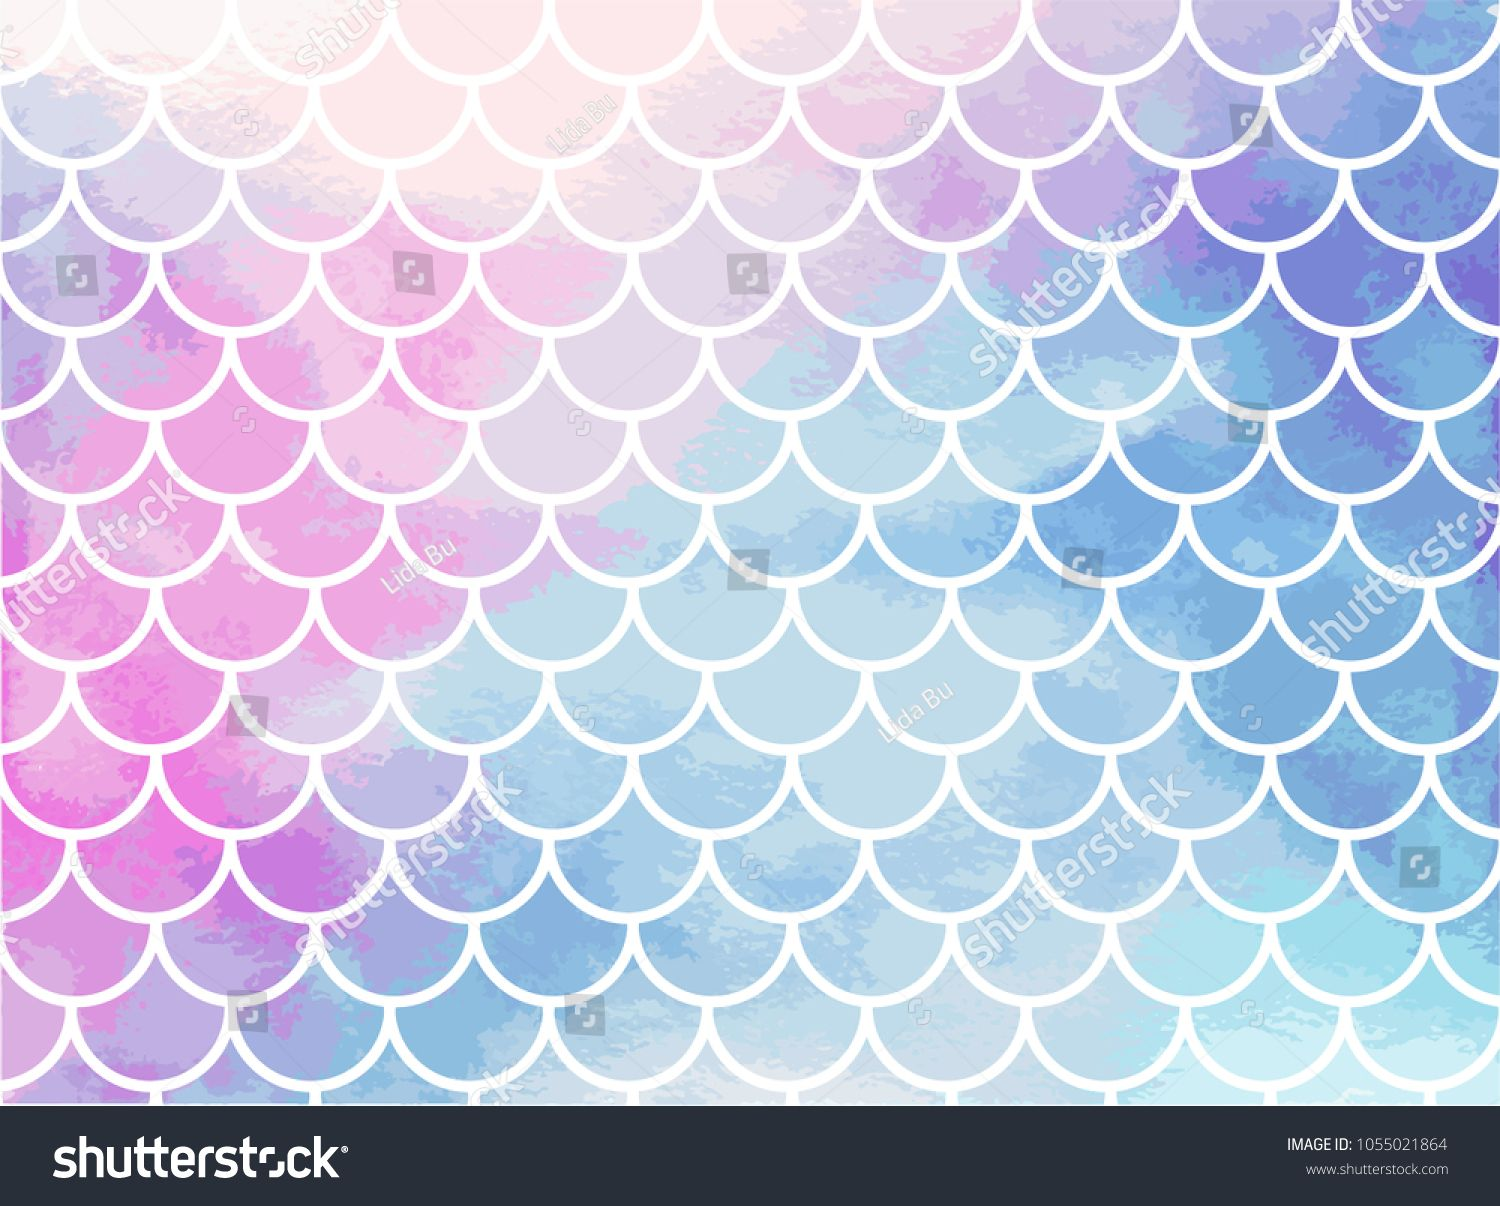 Pinkblue mermaid scales. Watercolor fish scales